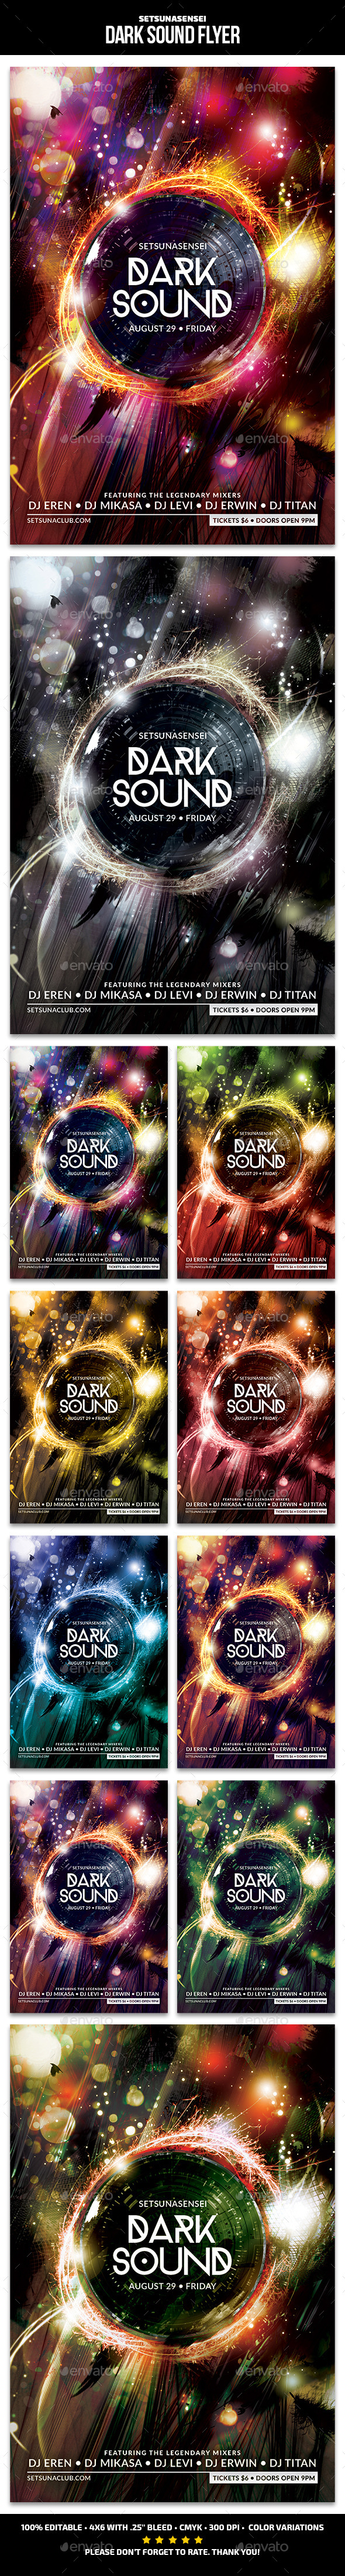 Dark Sound Flyer - Clubs & Parties Events